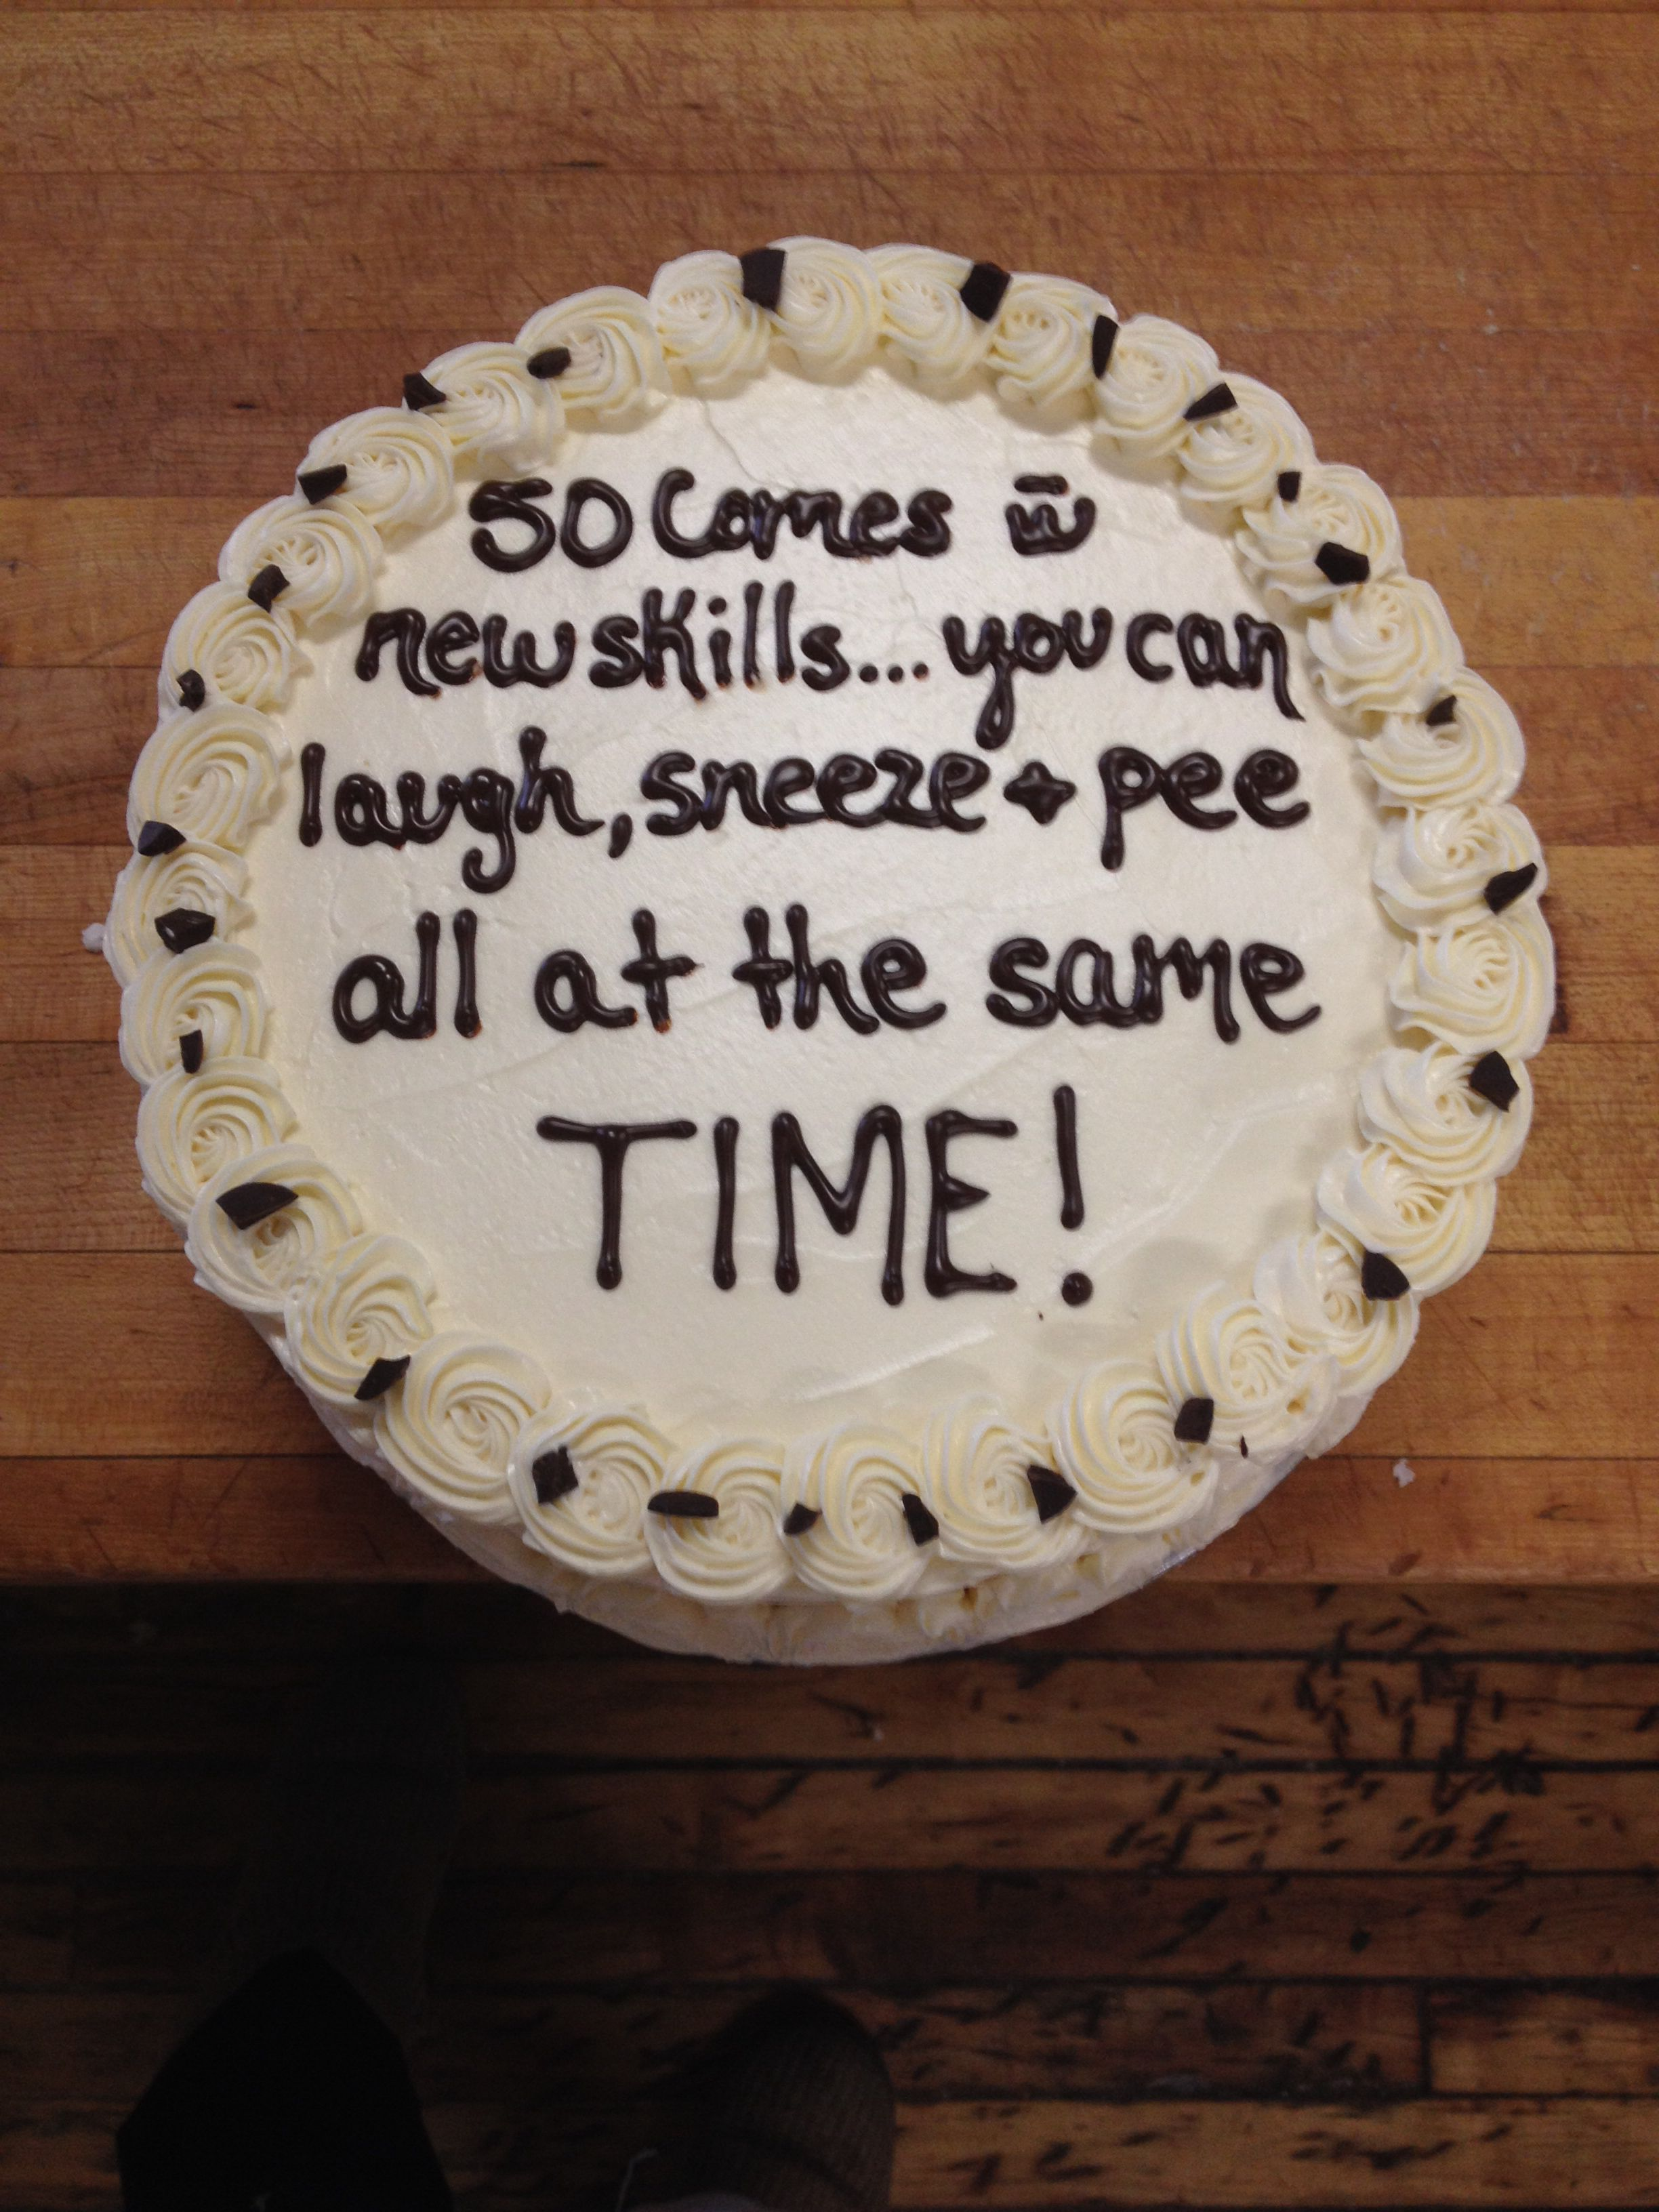 Funny anniversary cake quotes - Funny Cake Sayings About Turning 50